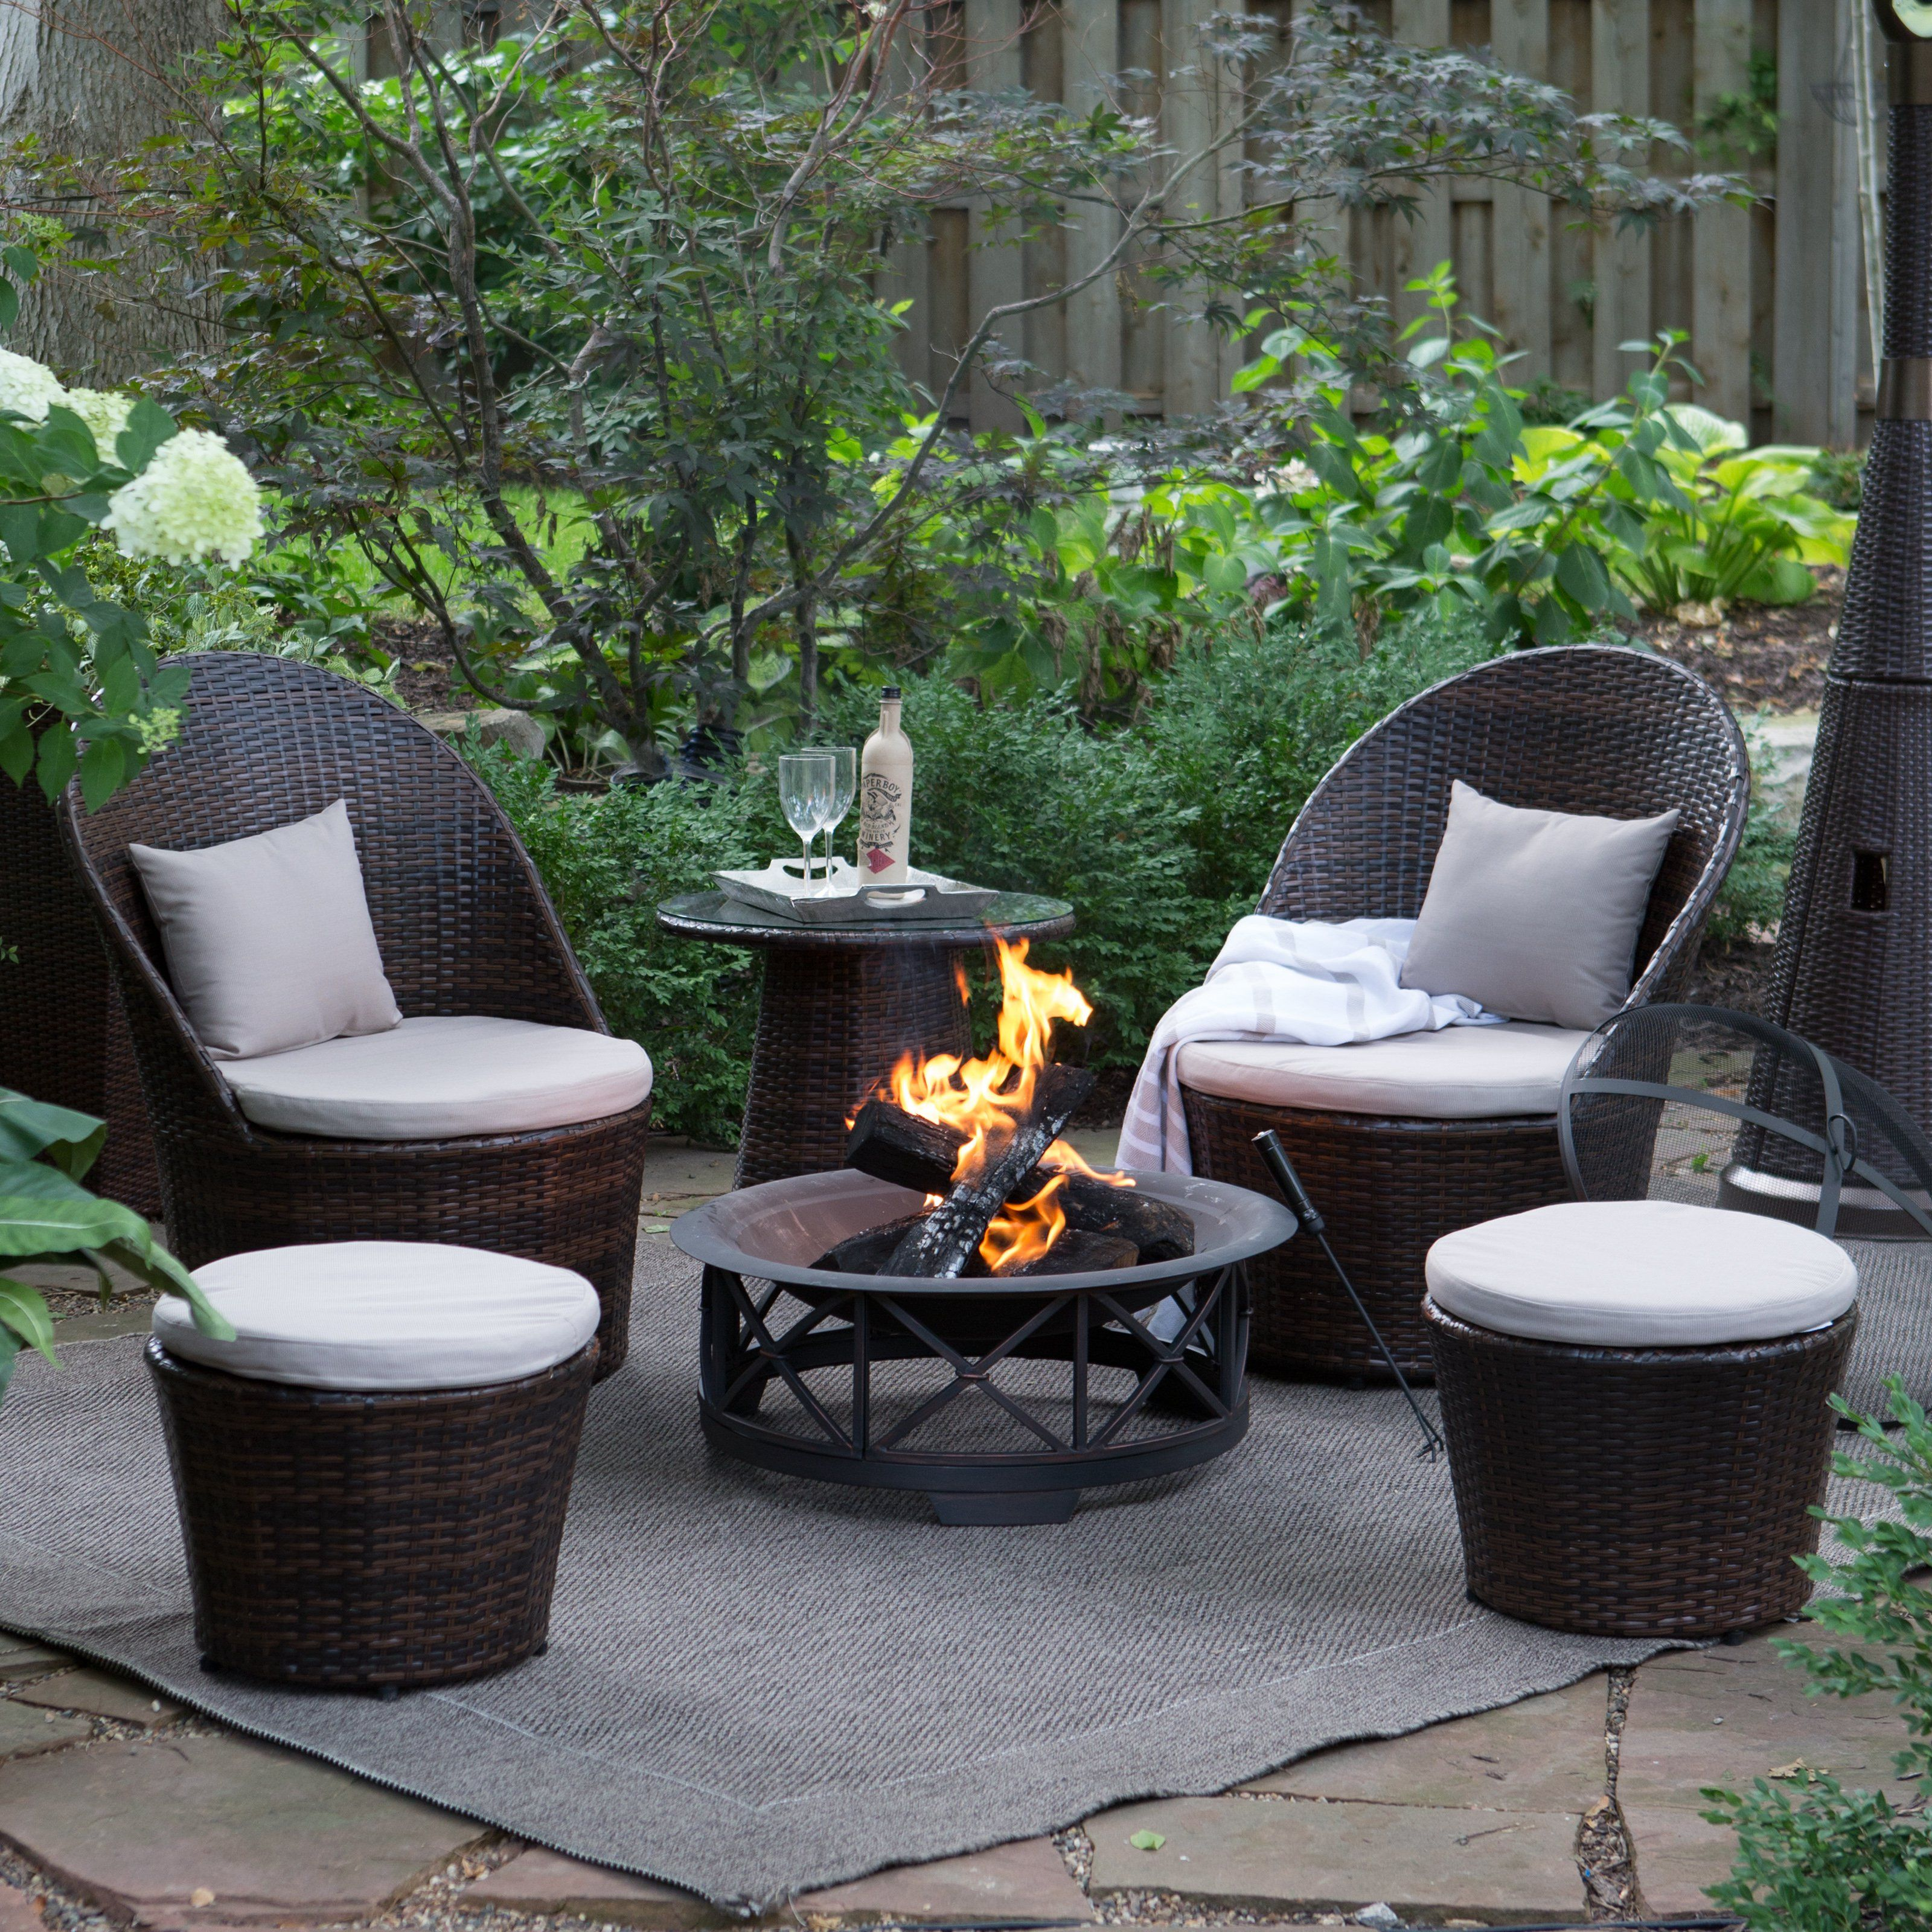 coral coast layton wicker outdoor fire pit chat set tea coffee